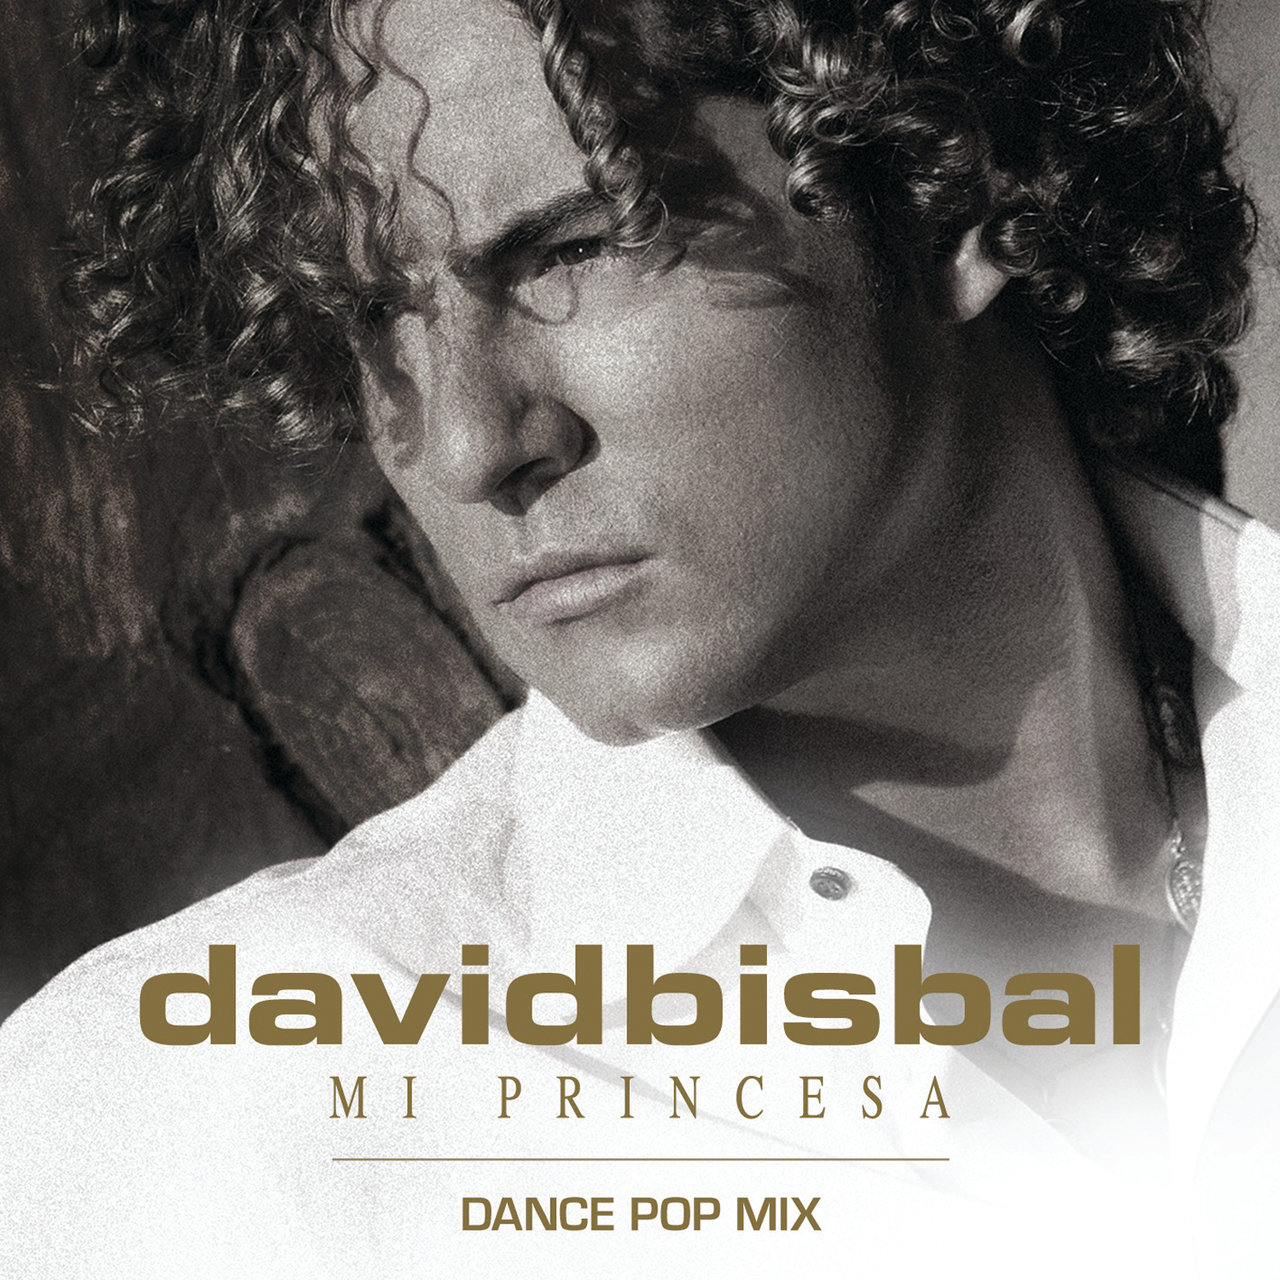 Mi Princesa (Dance Pop Mix)